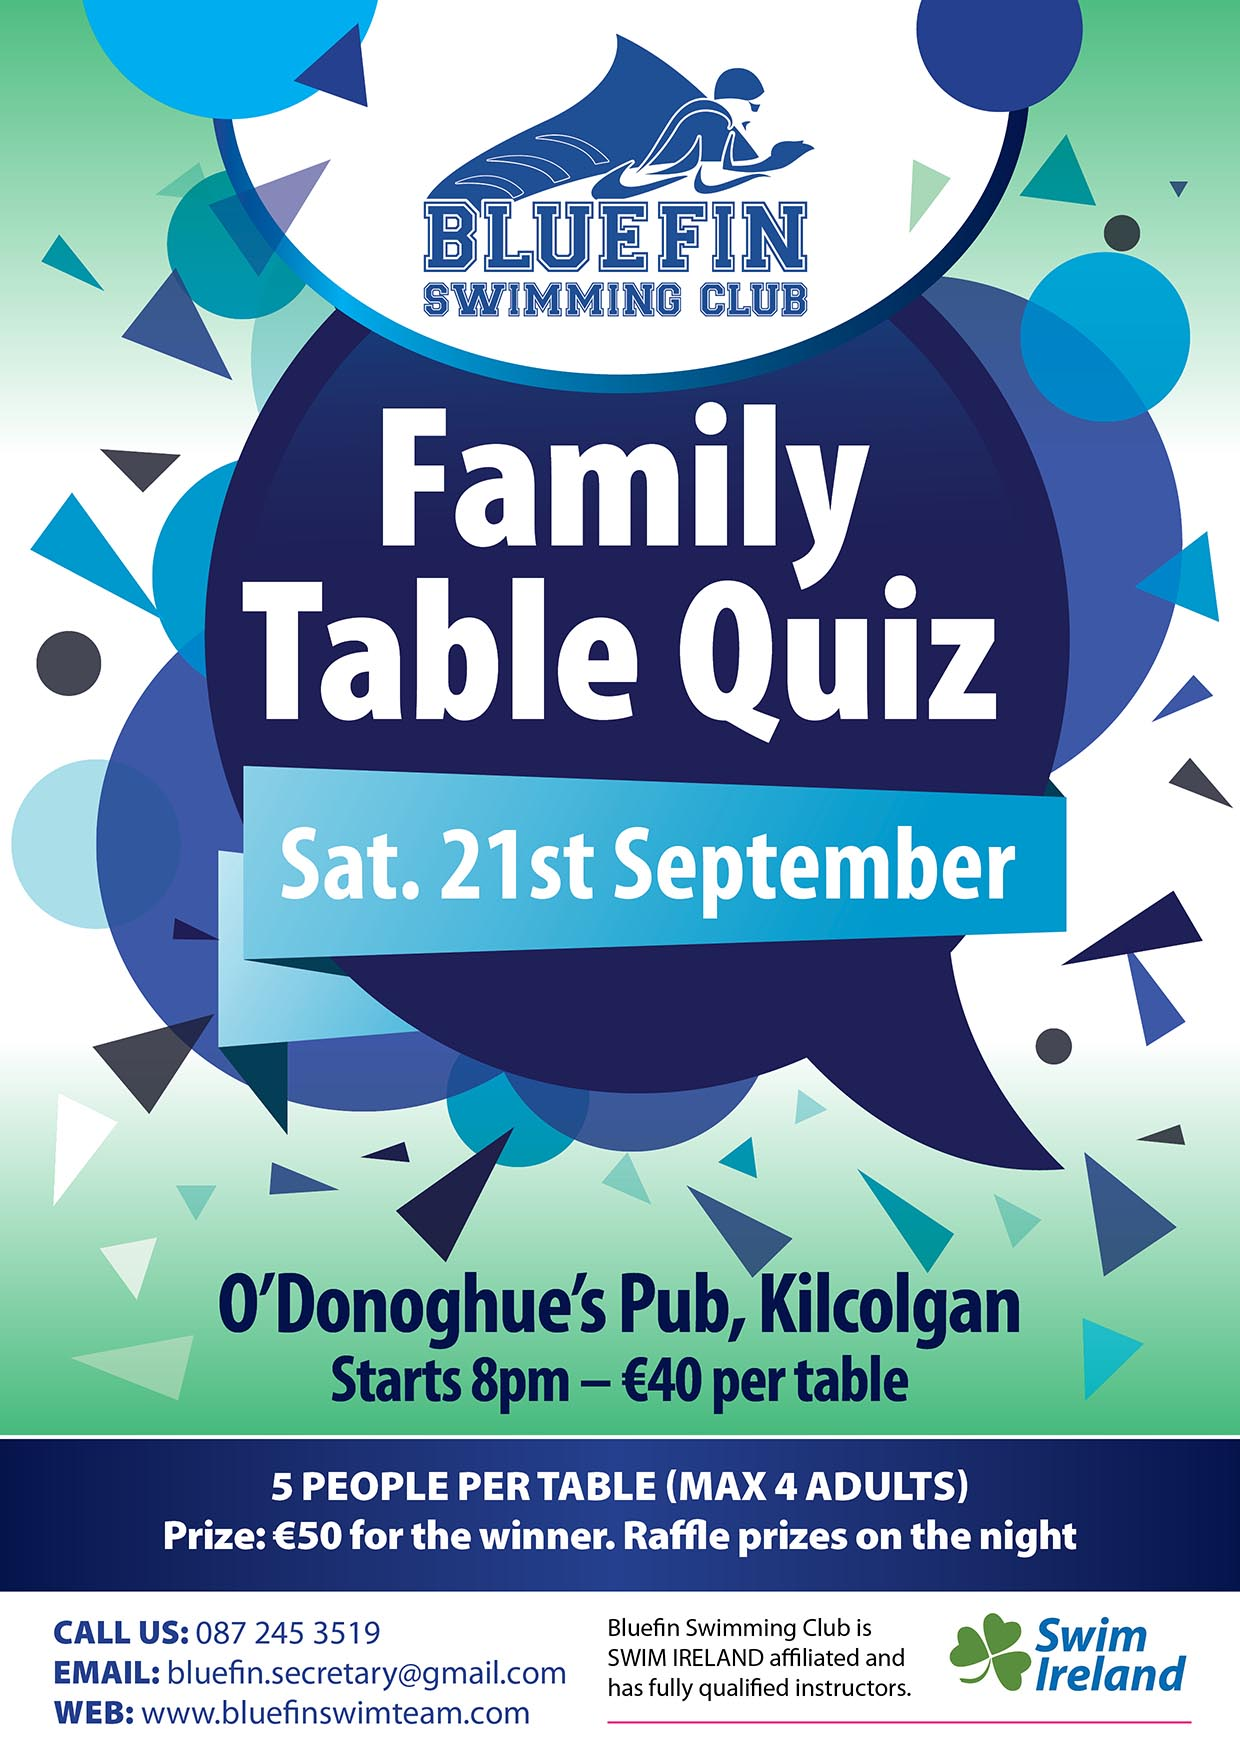 Bluefin Table Quiz Fundraiser | Bluefin Swim Team